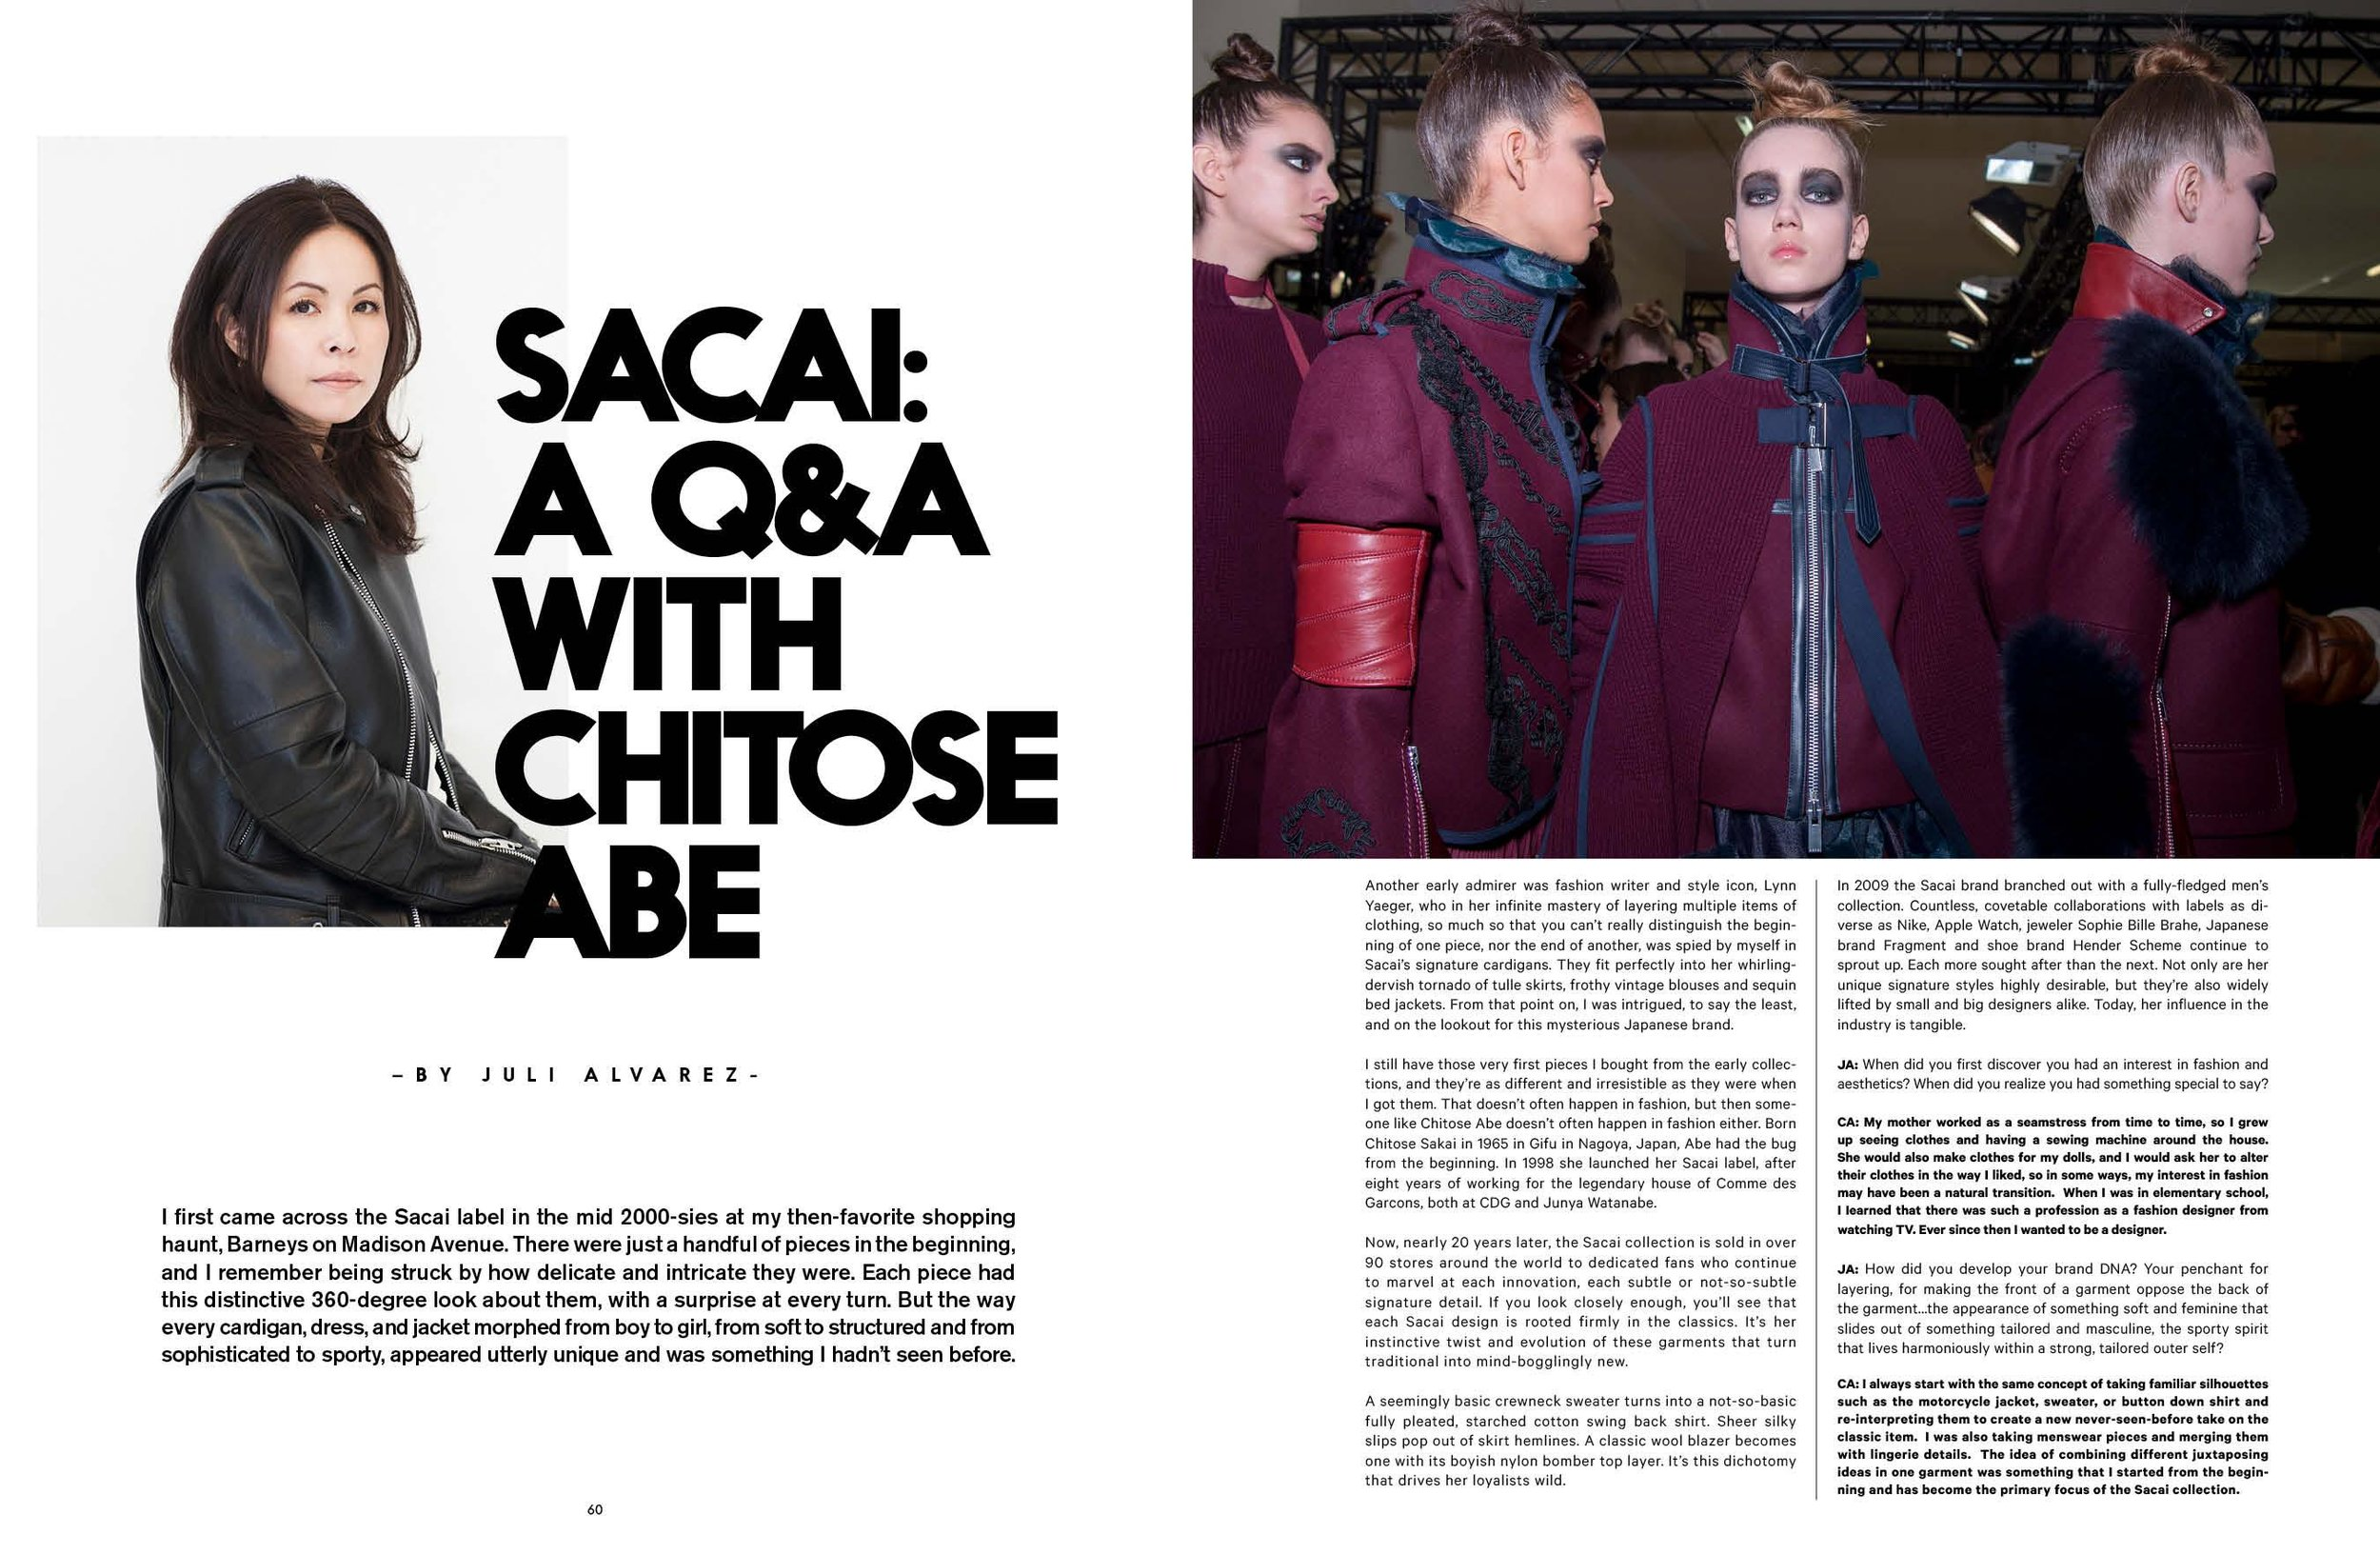 sacai feature / amazing magazine